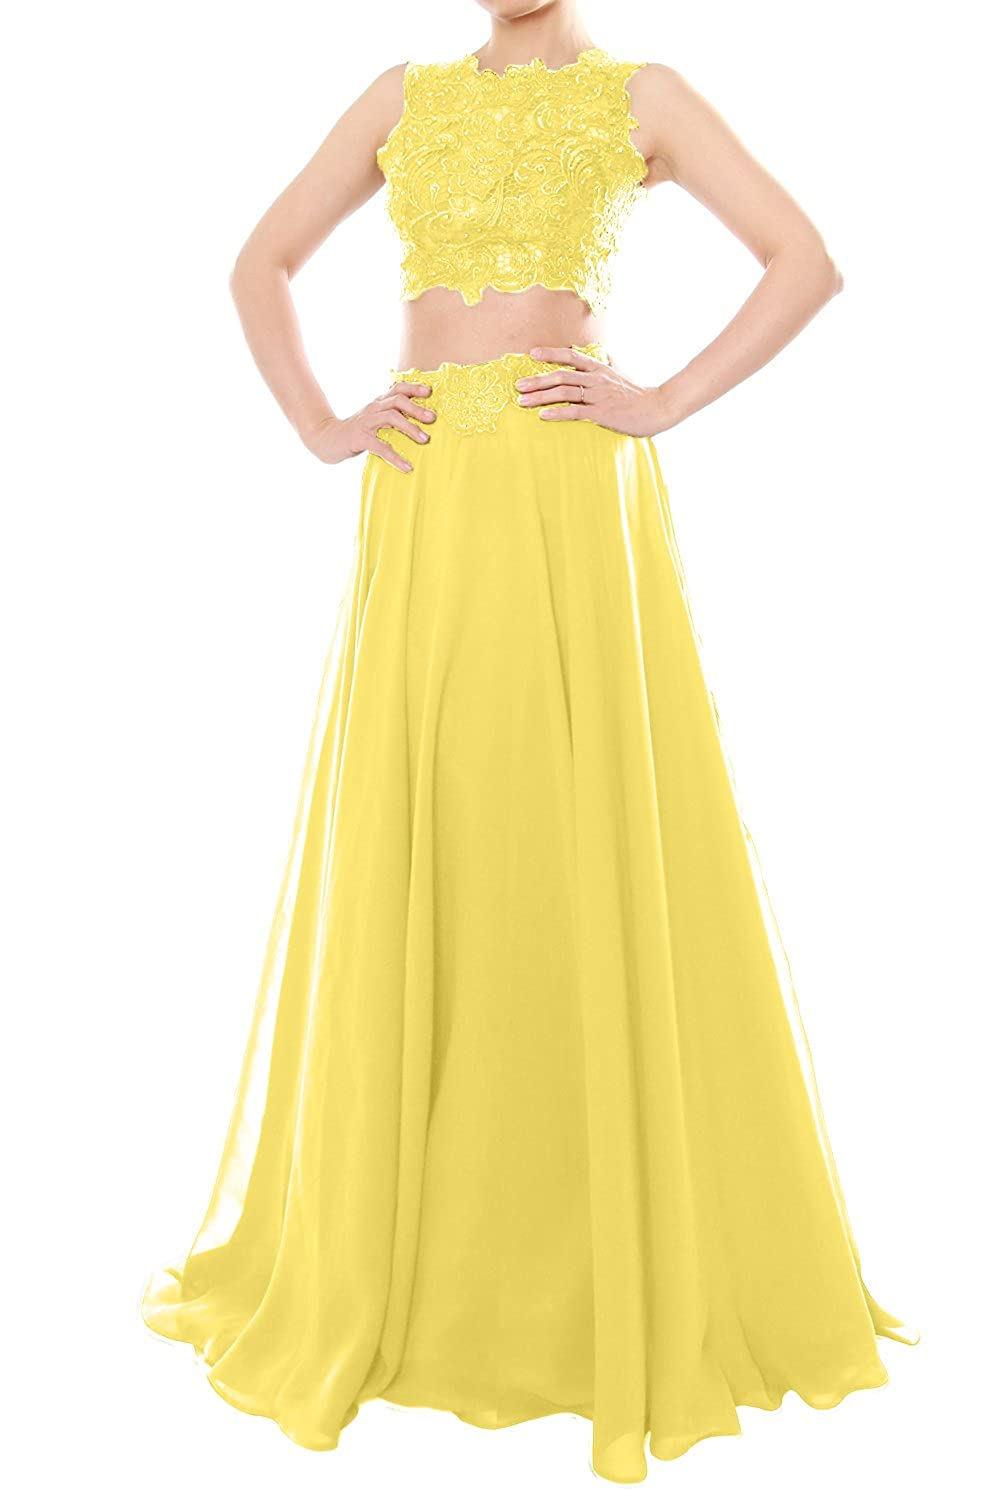 MACloth Women Two Piece High Neck Lace Chiffon Long Prom Dress Formal Party Gown